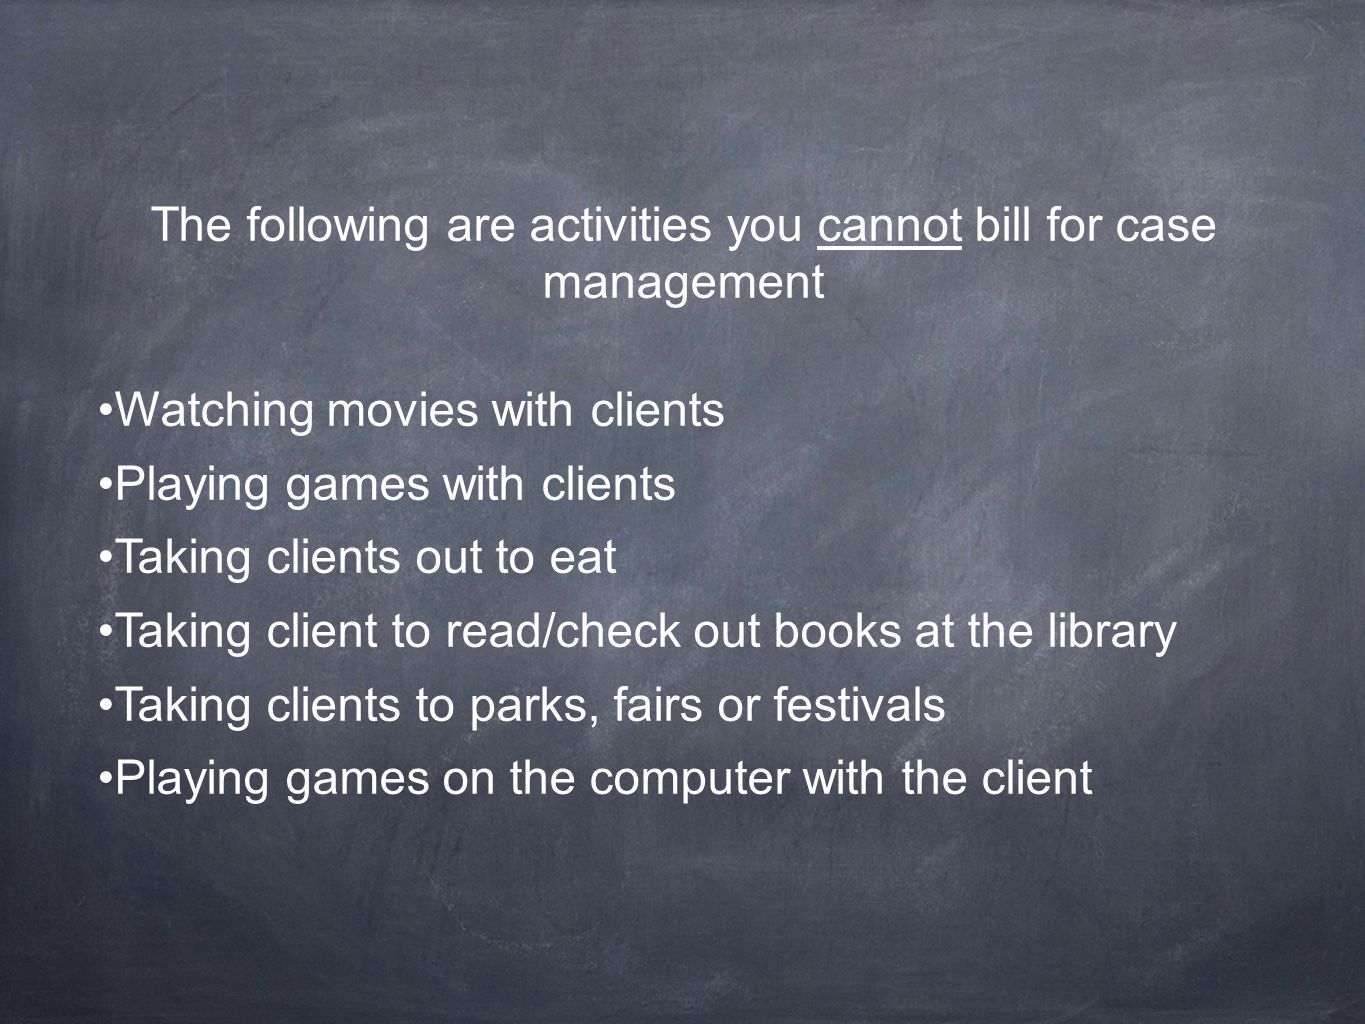 The following are activities you cannot bill for case management Watching movies with clients Playing games with clients Taking clients out to eat Taking client to read/check out books at the library Taking clients to parks, fairs or festivals Playing games on the computer with the client